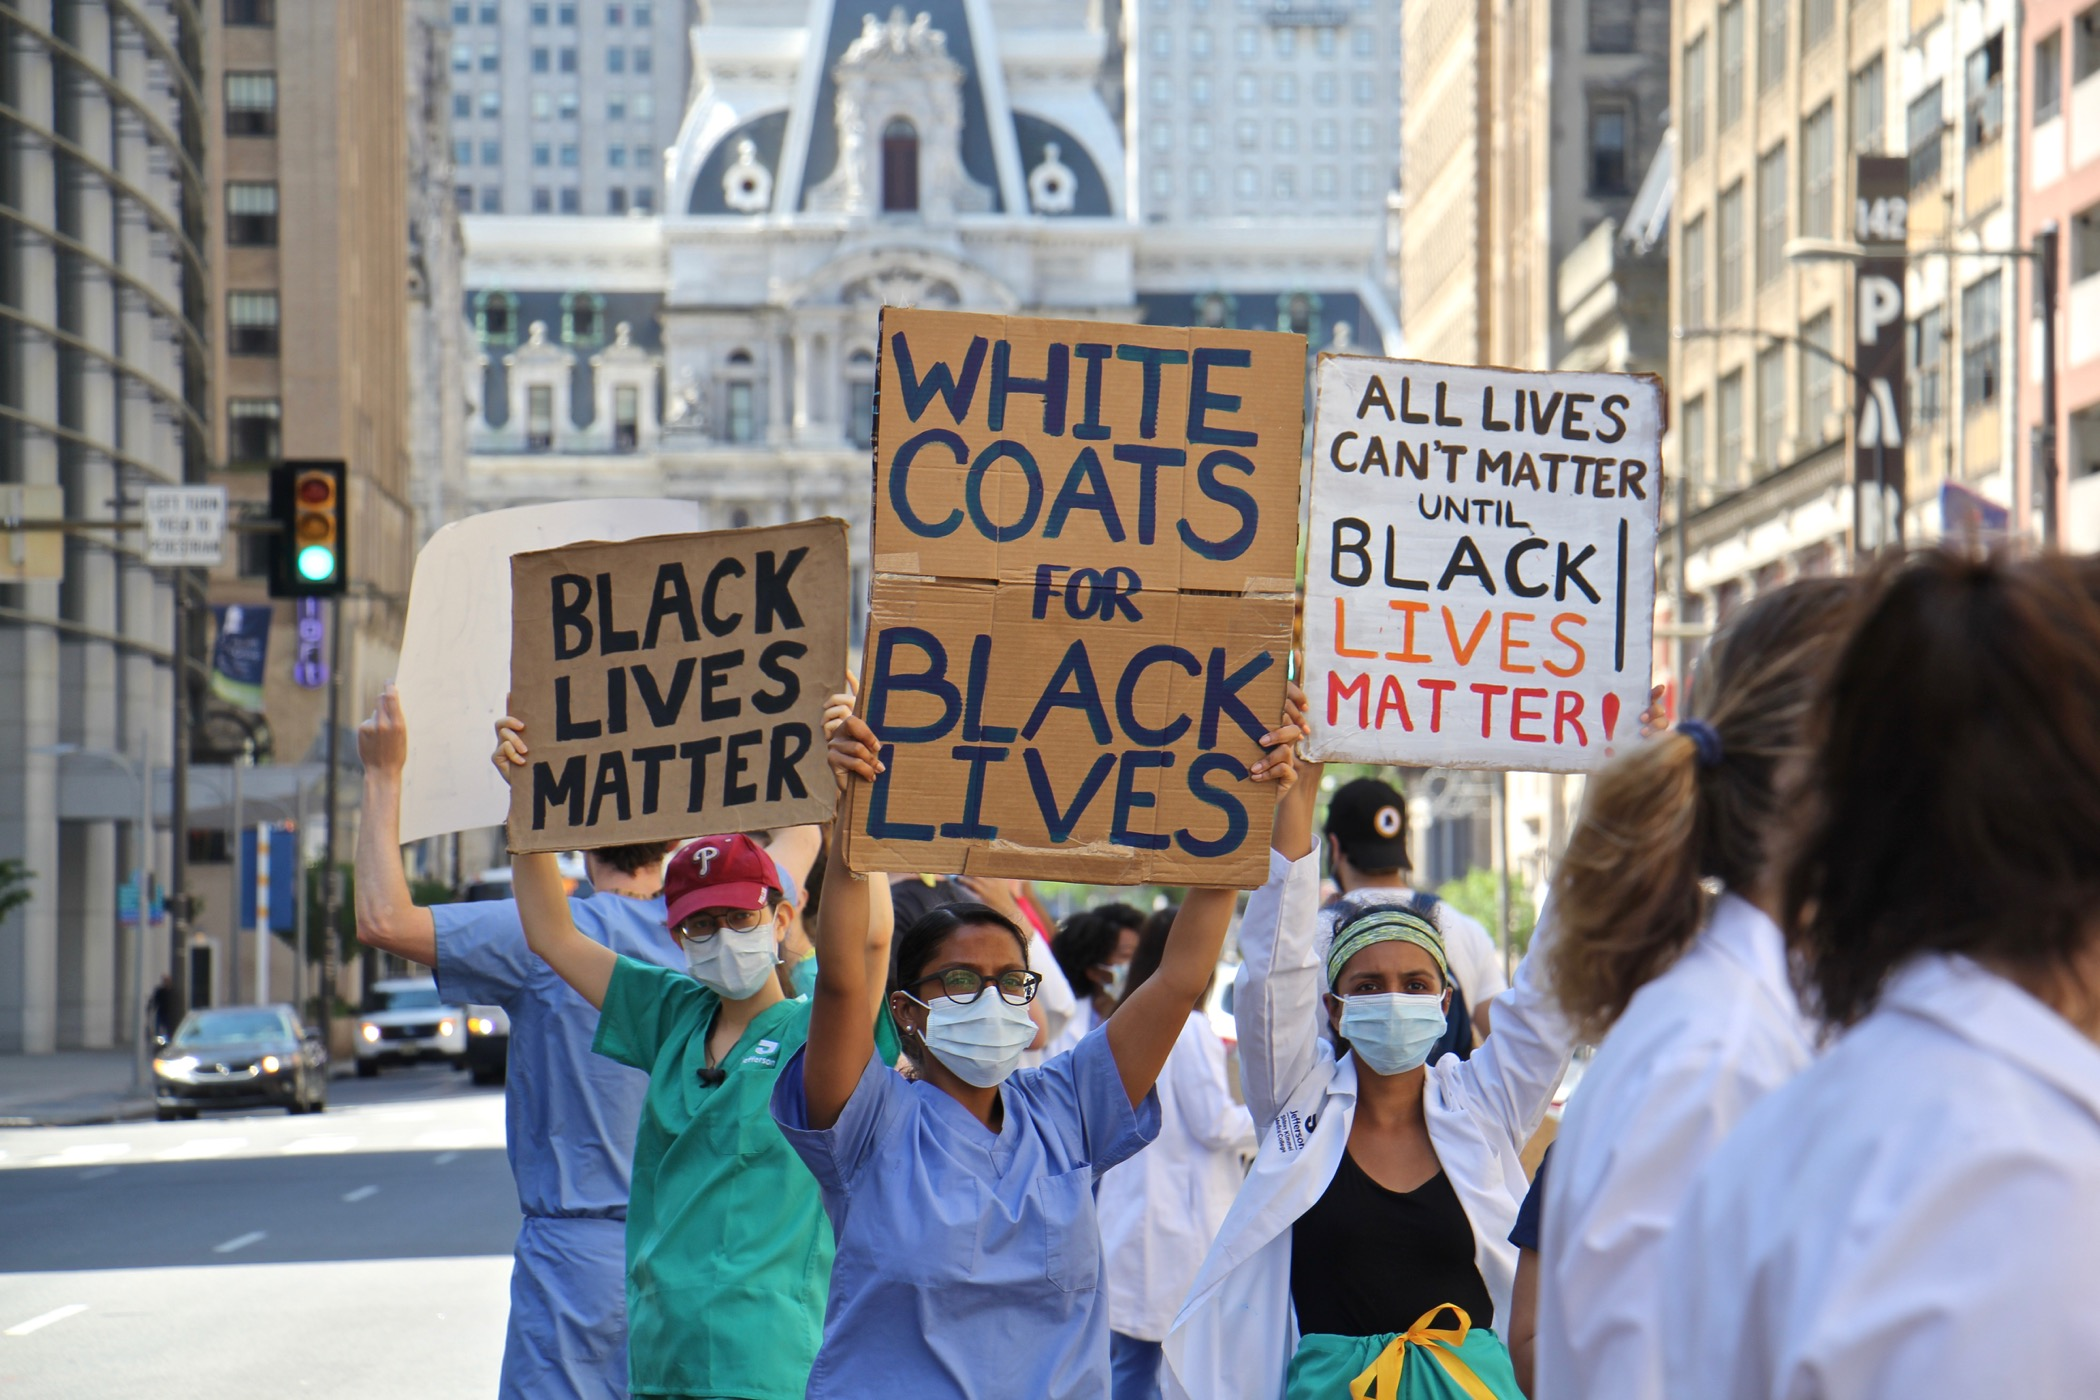 Protesters in scrubs and lab coats